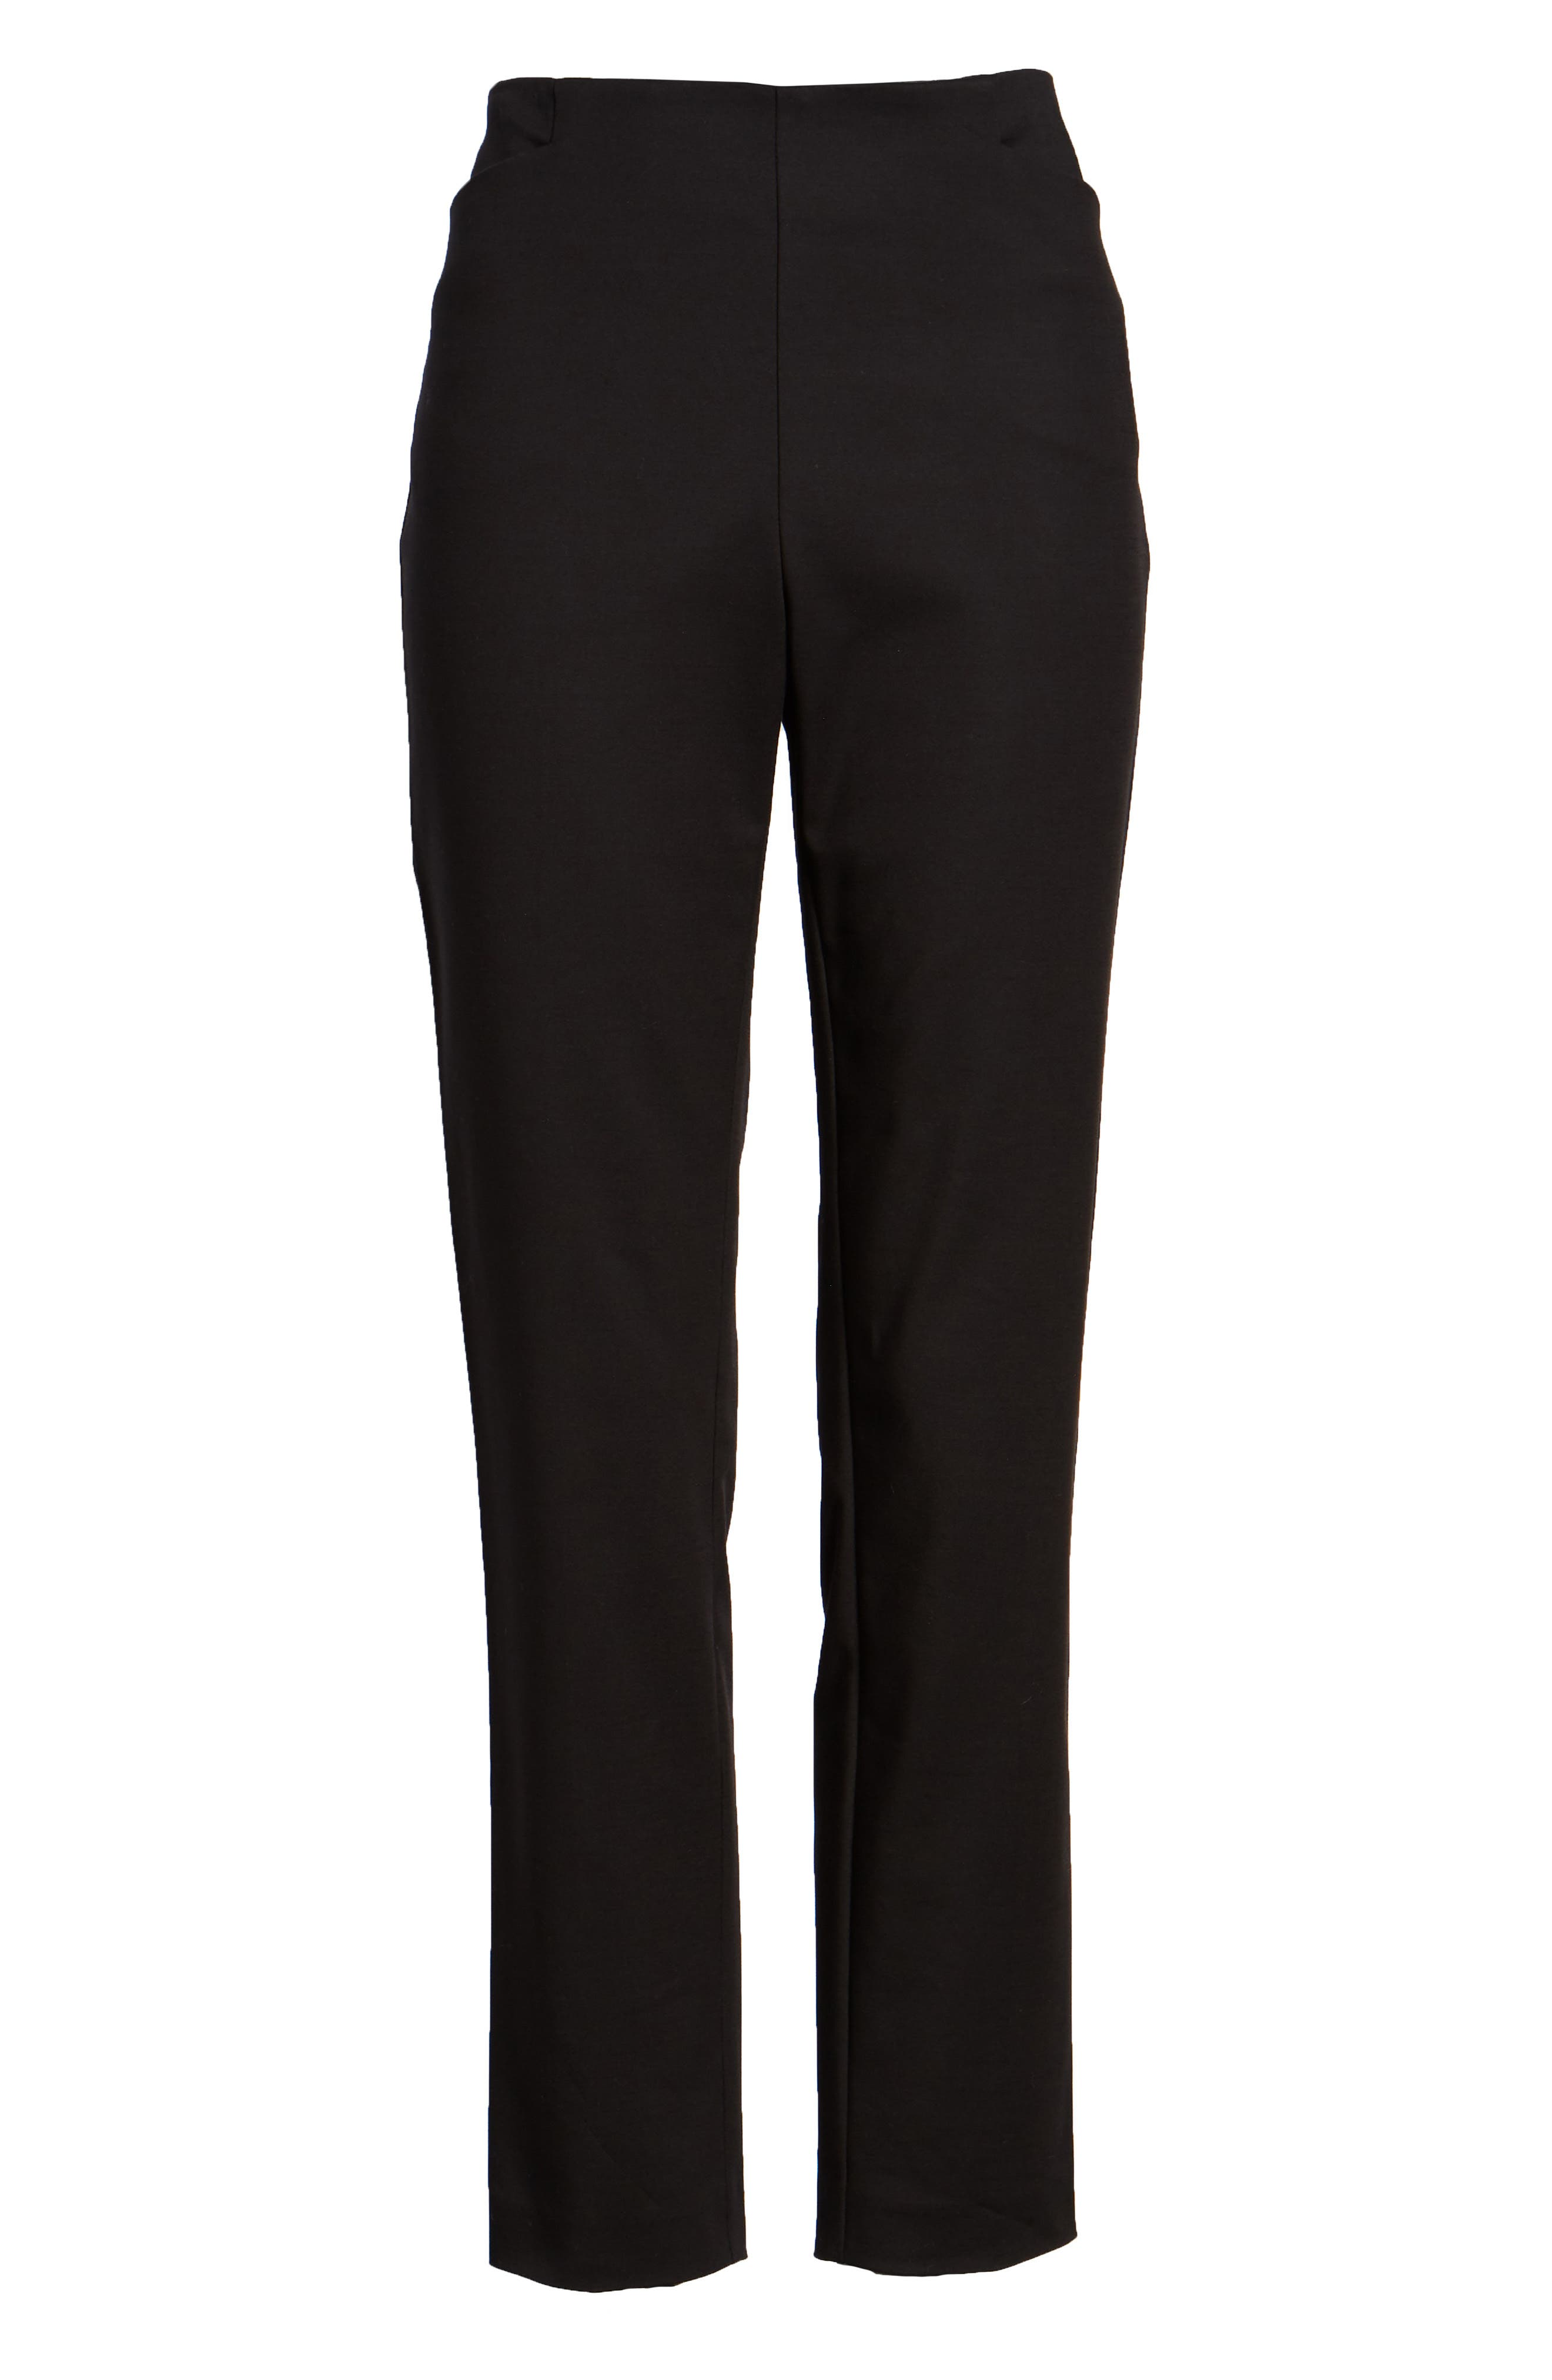 VINCE CAMUTO, Side Zip Stretch Cotton Blend Pants, Alternate thumbnail 7, color, RICH BLACK